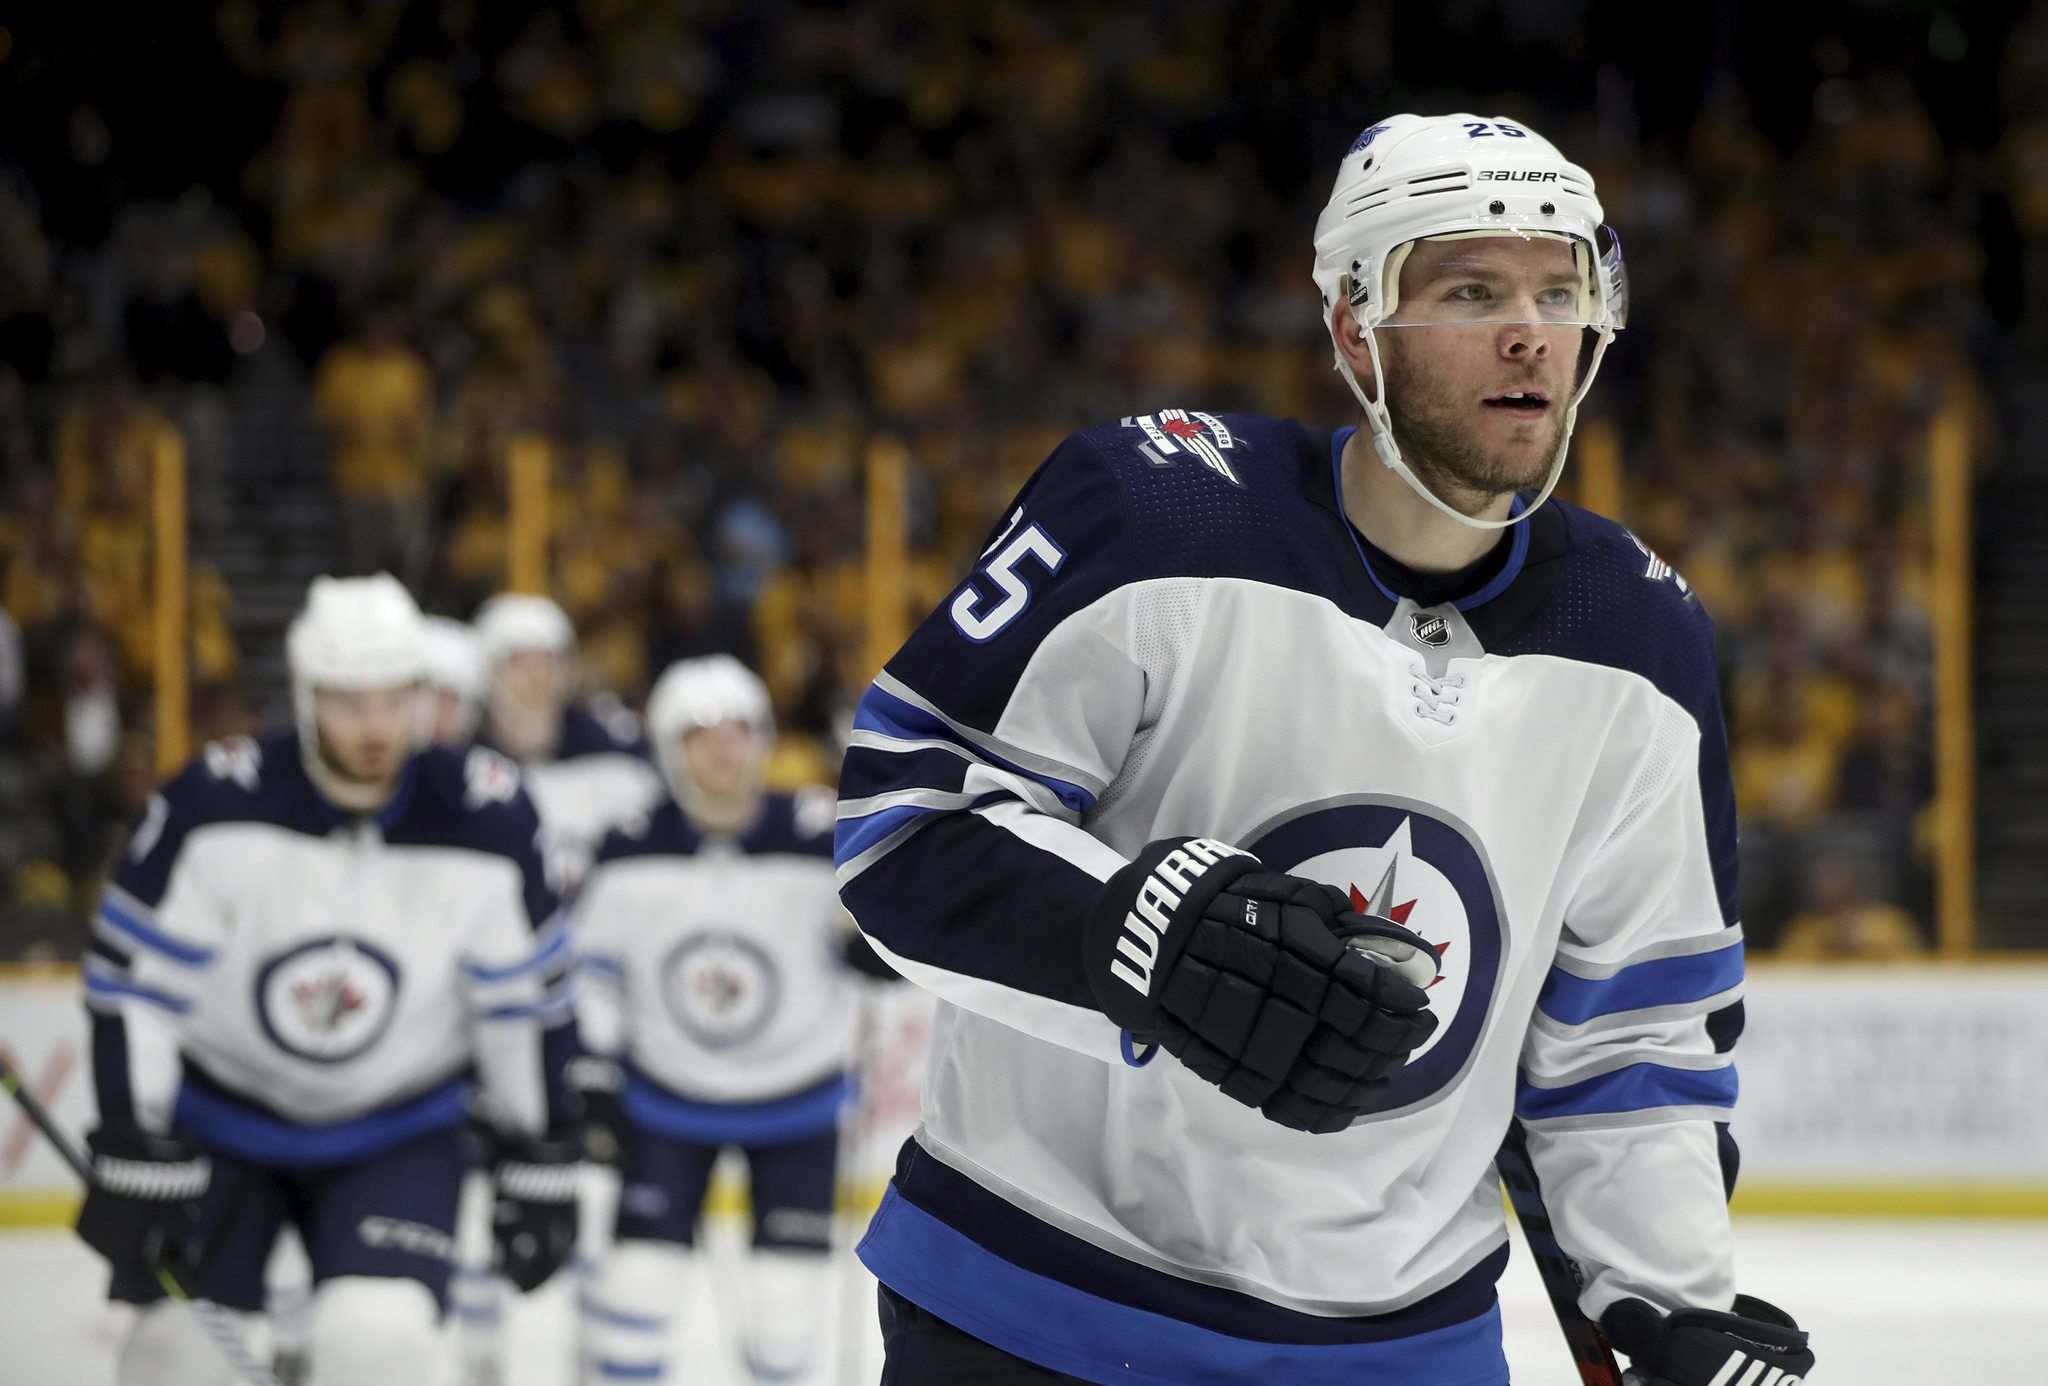 TREVOR HAGAN / WINNIPEG FREE PRESSWinnipeg Jets&rsquo; Paul Stastny (25), leads the team off the ice after scoring against the Nashville Predators&rsquo; during second period NHL action during game one of their second round playoff series in Nashville, TN, Friday, April 27, 2018.</p></p>